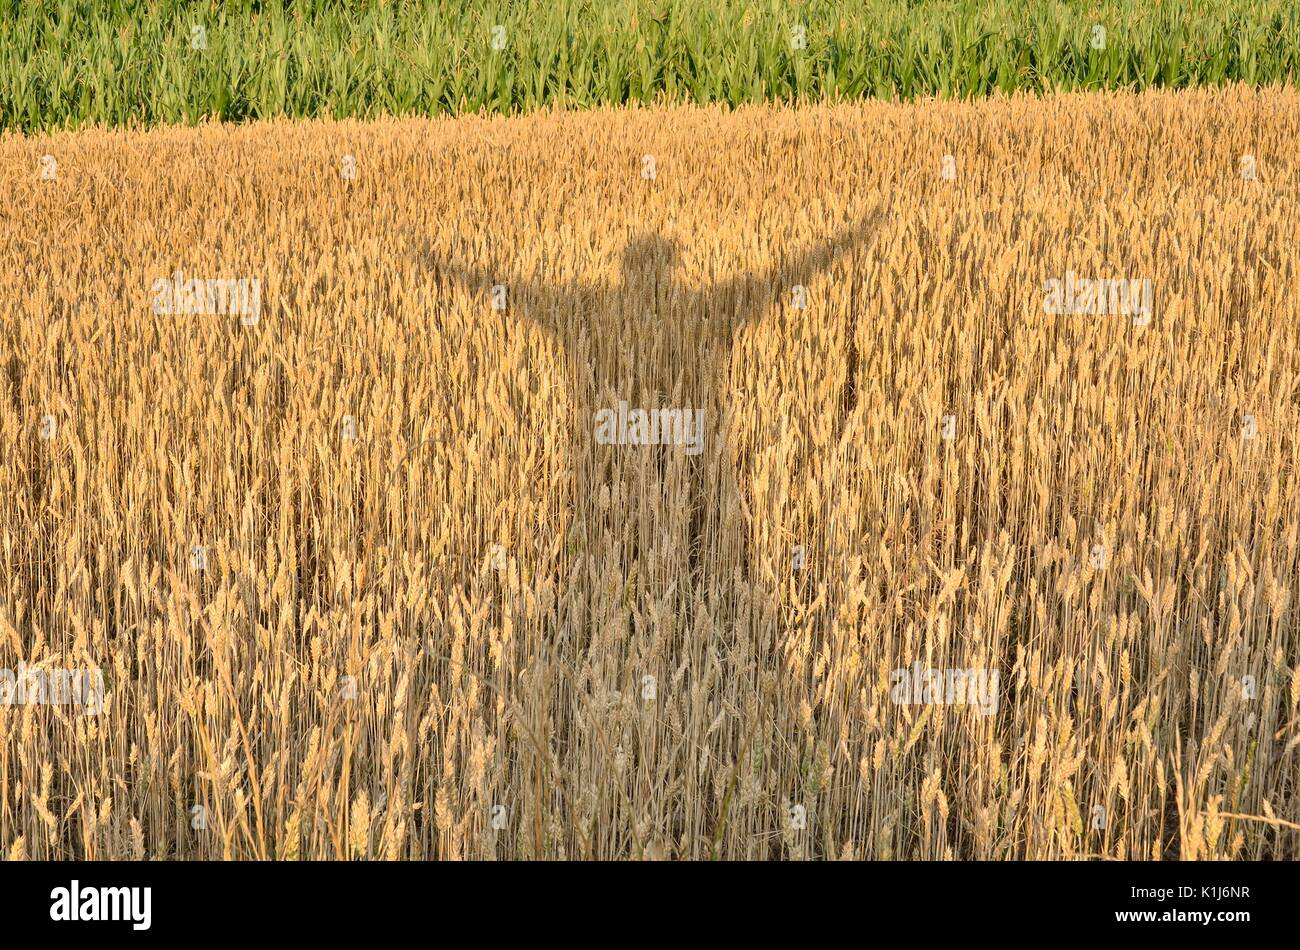 Silhouette enjoying the crop. Shadow of a man with his hands raised on a grain field. Stock Photo